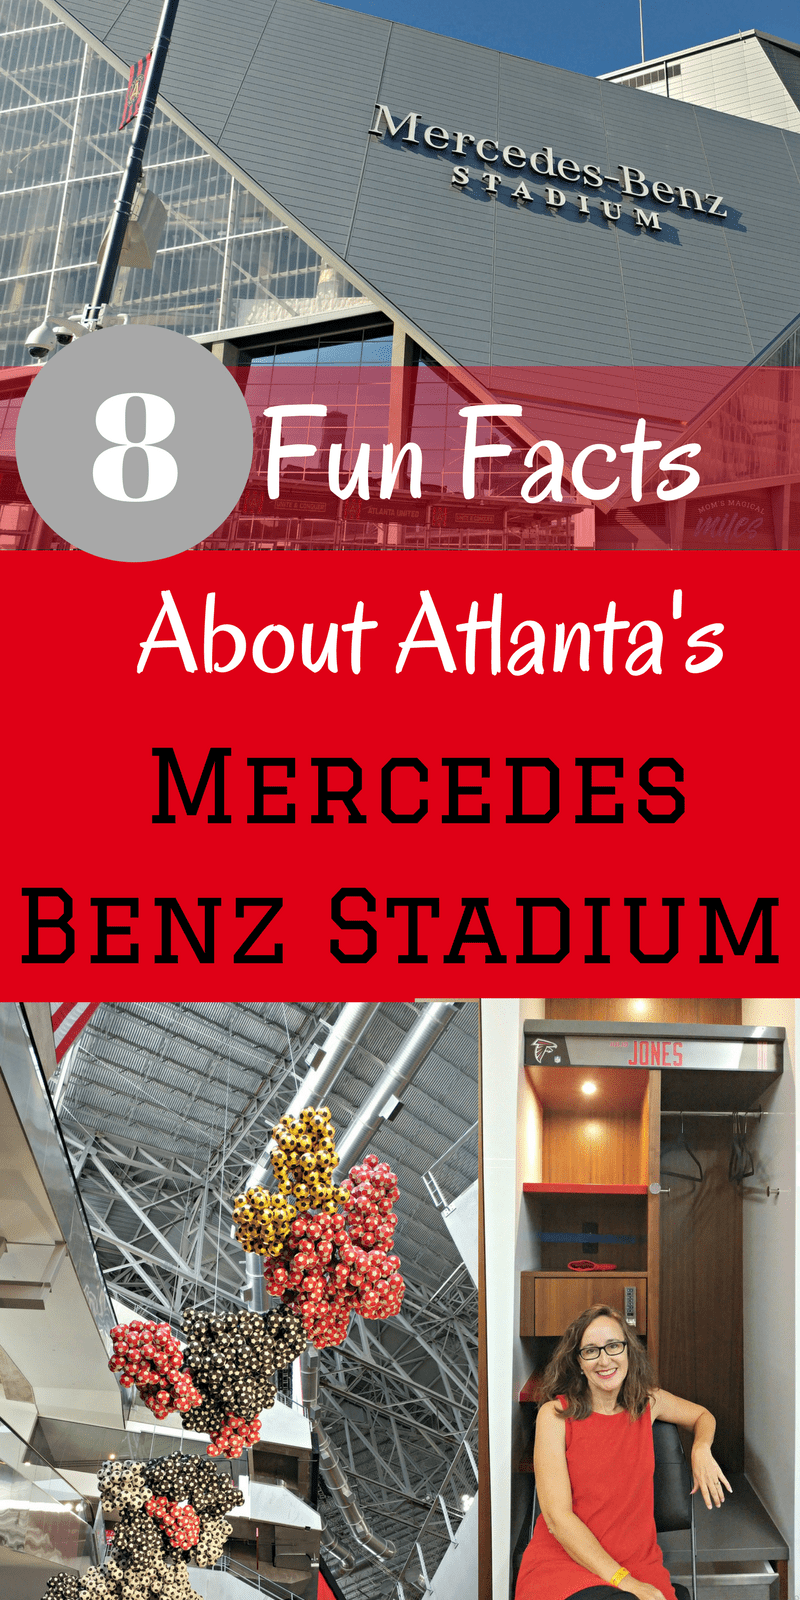 You don't have to be a football or soccer fan to appreciate the architecture, style and whimsy of the new Mercedes-Benz Stadium in Atlanta! You also don't have to be a VIP to get a tour. #MBStadium